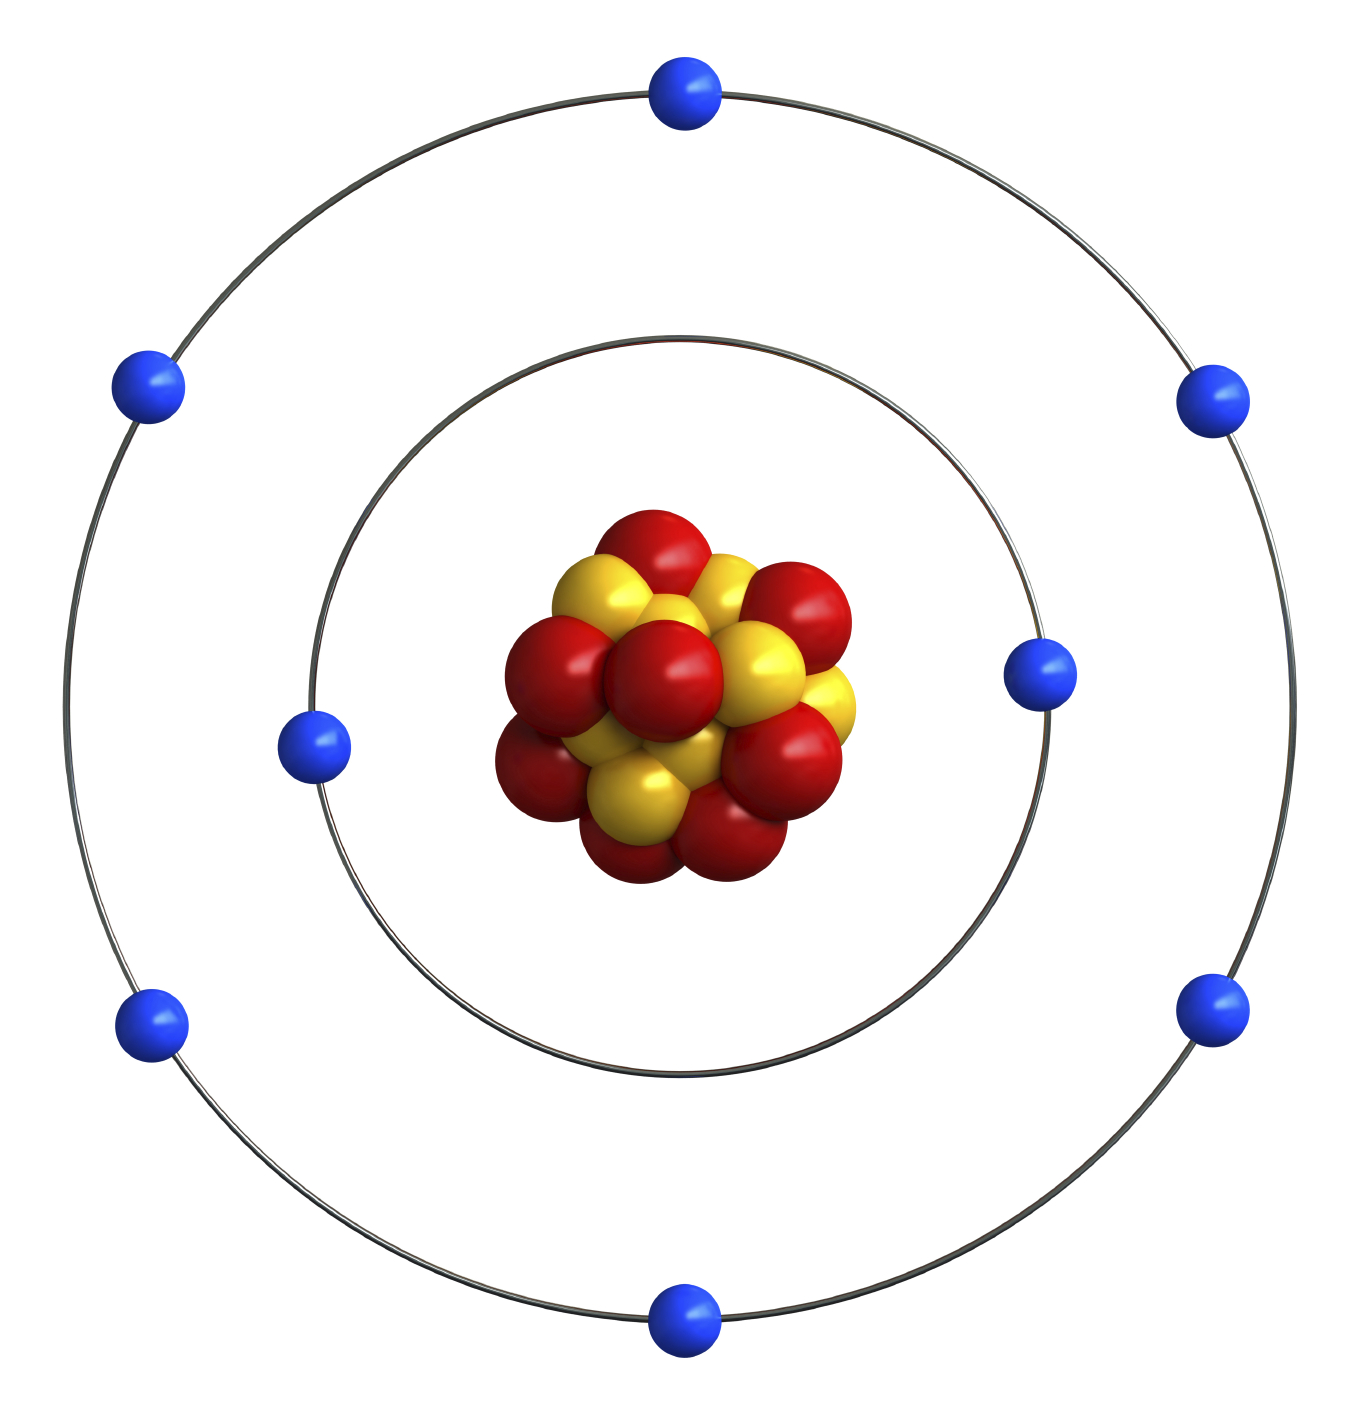 Bohr Diagram For Oxygen